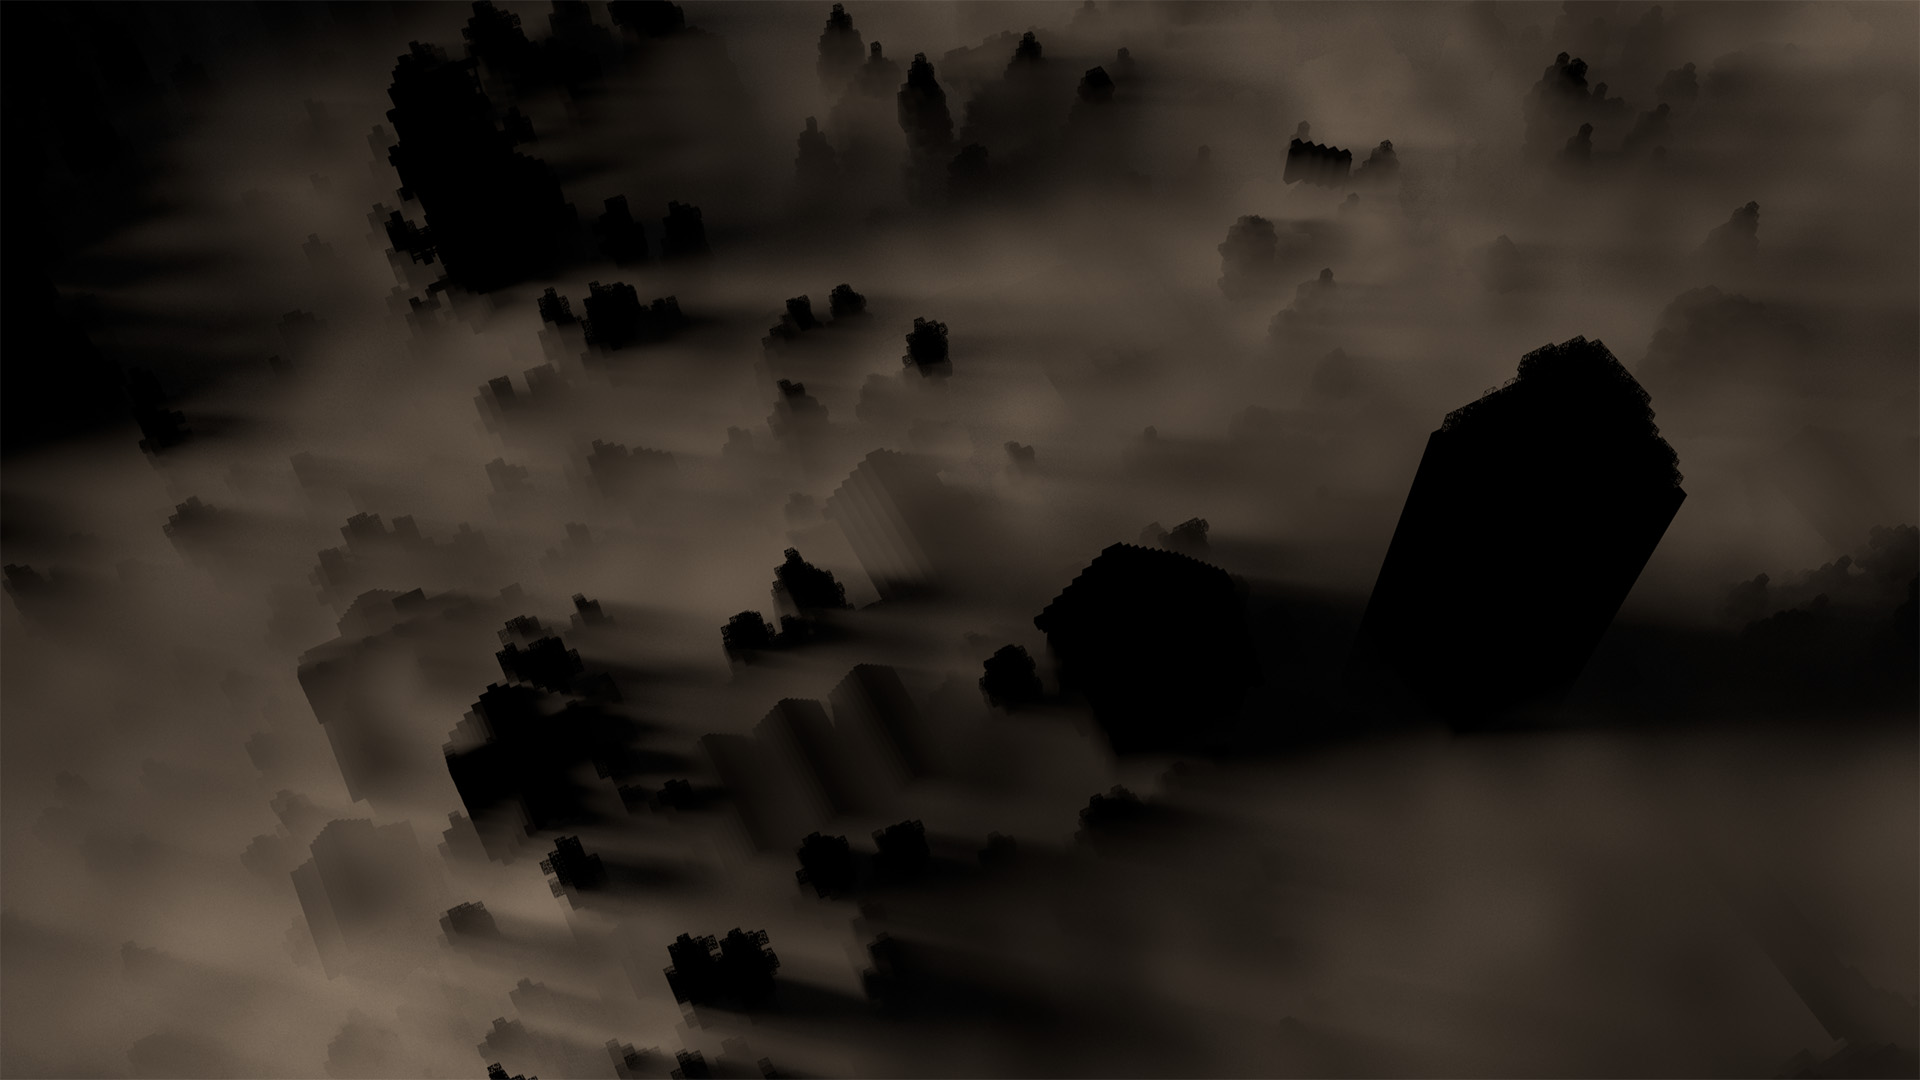 My initial attempt at the fog pass.